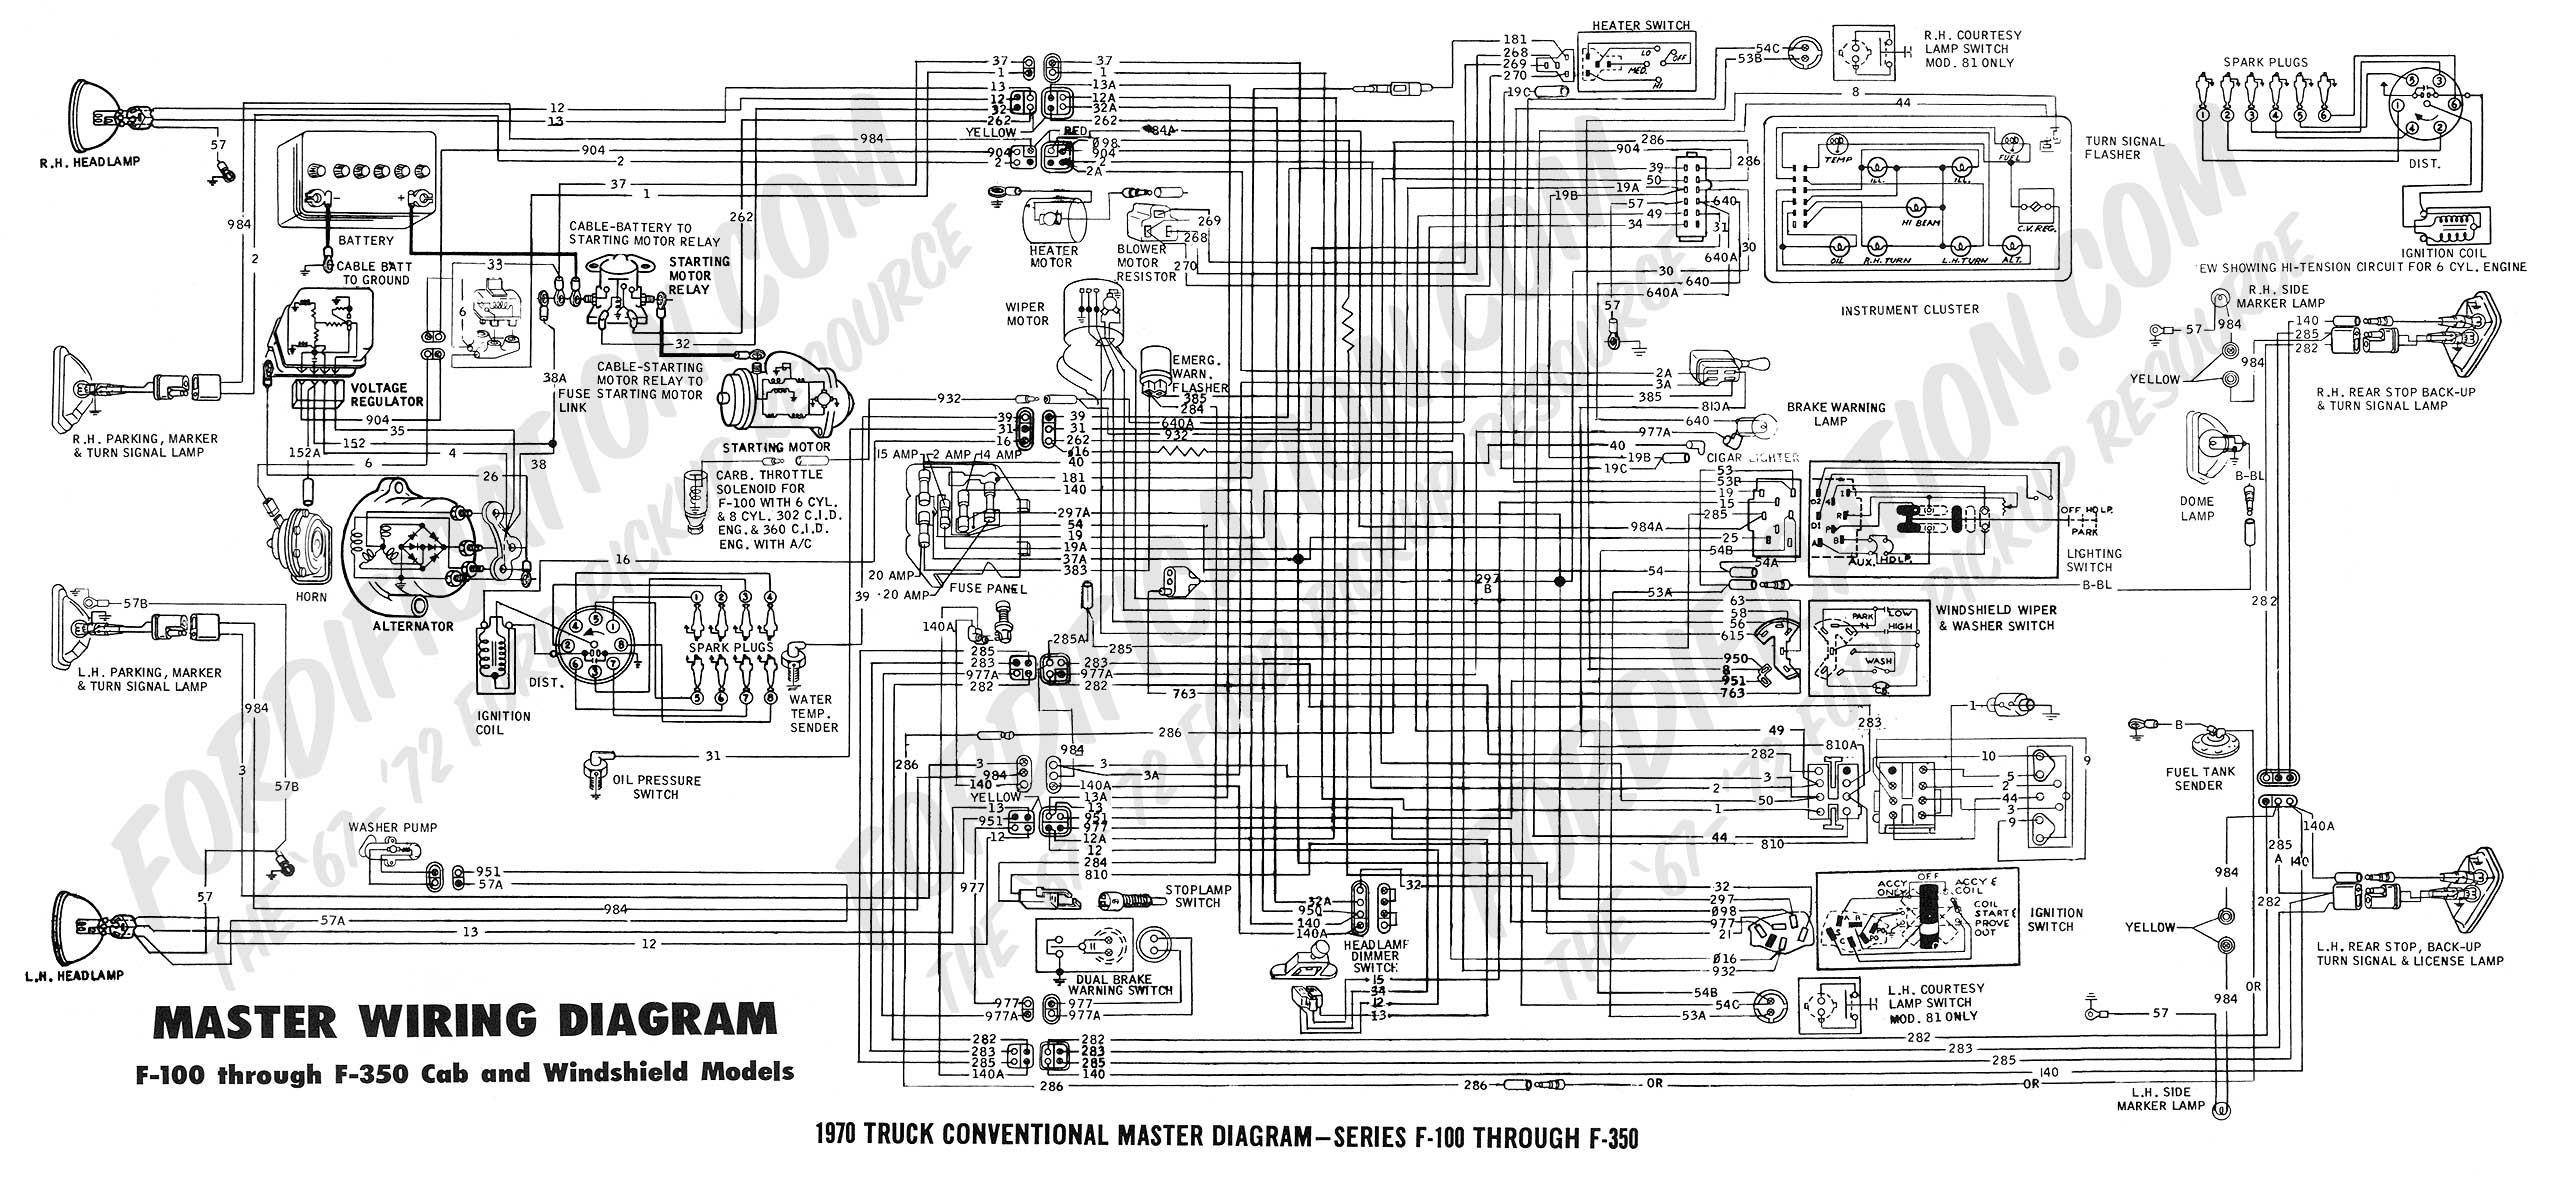 wiring diagram 70_master wiring diagram for 1971 ford f100 pickup readingrat net 1971 ford f250 wiring diagram at readyjetset.co